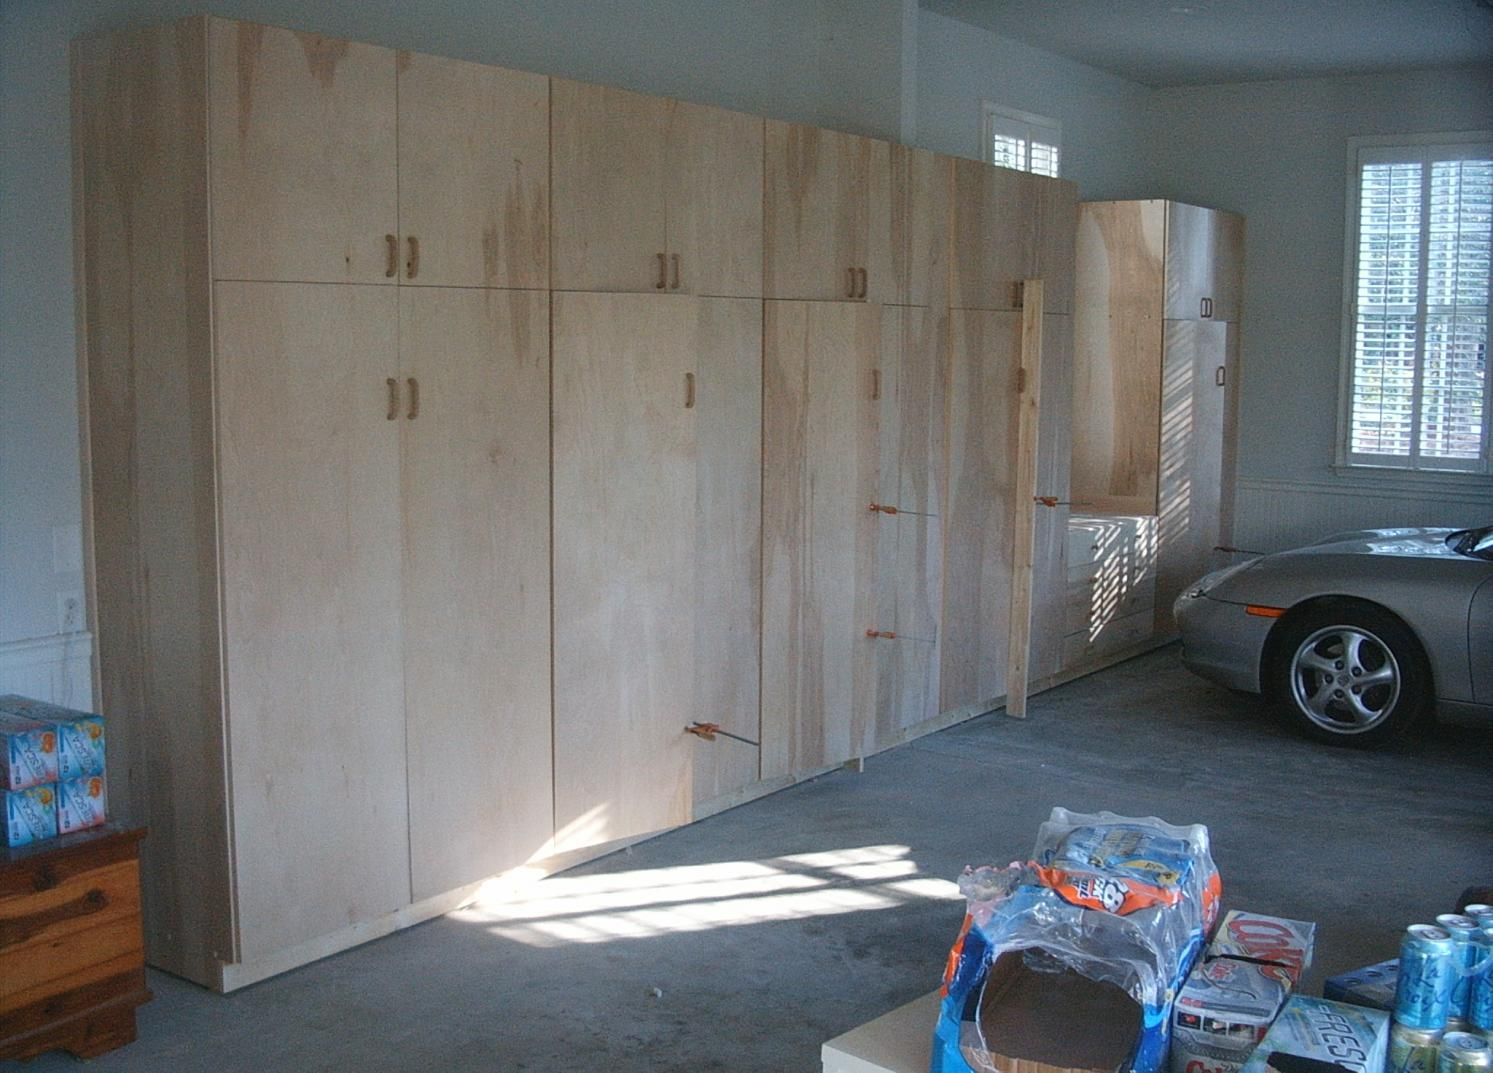 How to build an interior wall in the garage - Furniture Unfinished Custom Diy Wood Wall Garage Cabinets For Large Garage Spaces With Concrete Floor Tiles Ideas Garage Wall Cabinets